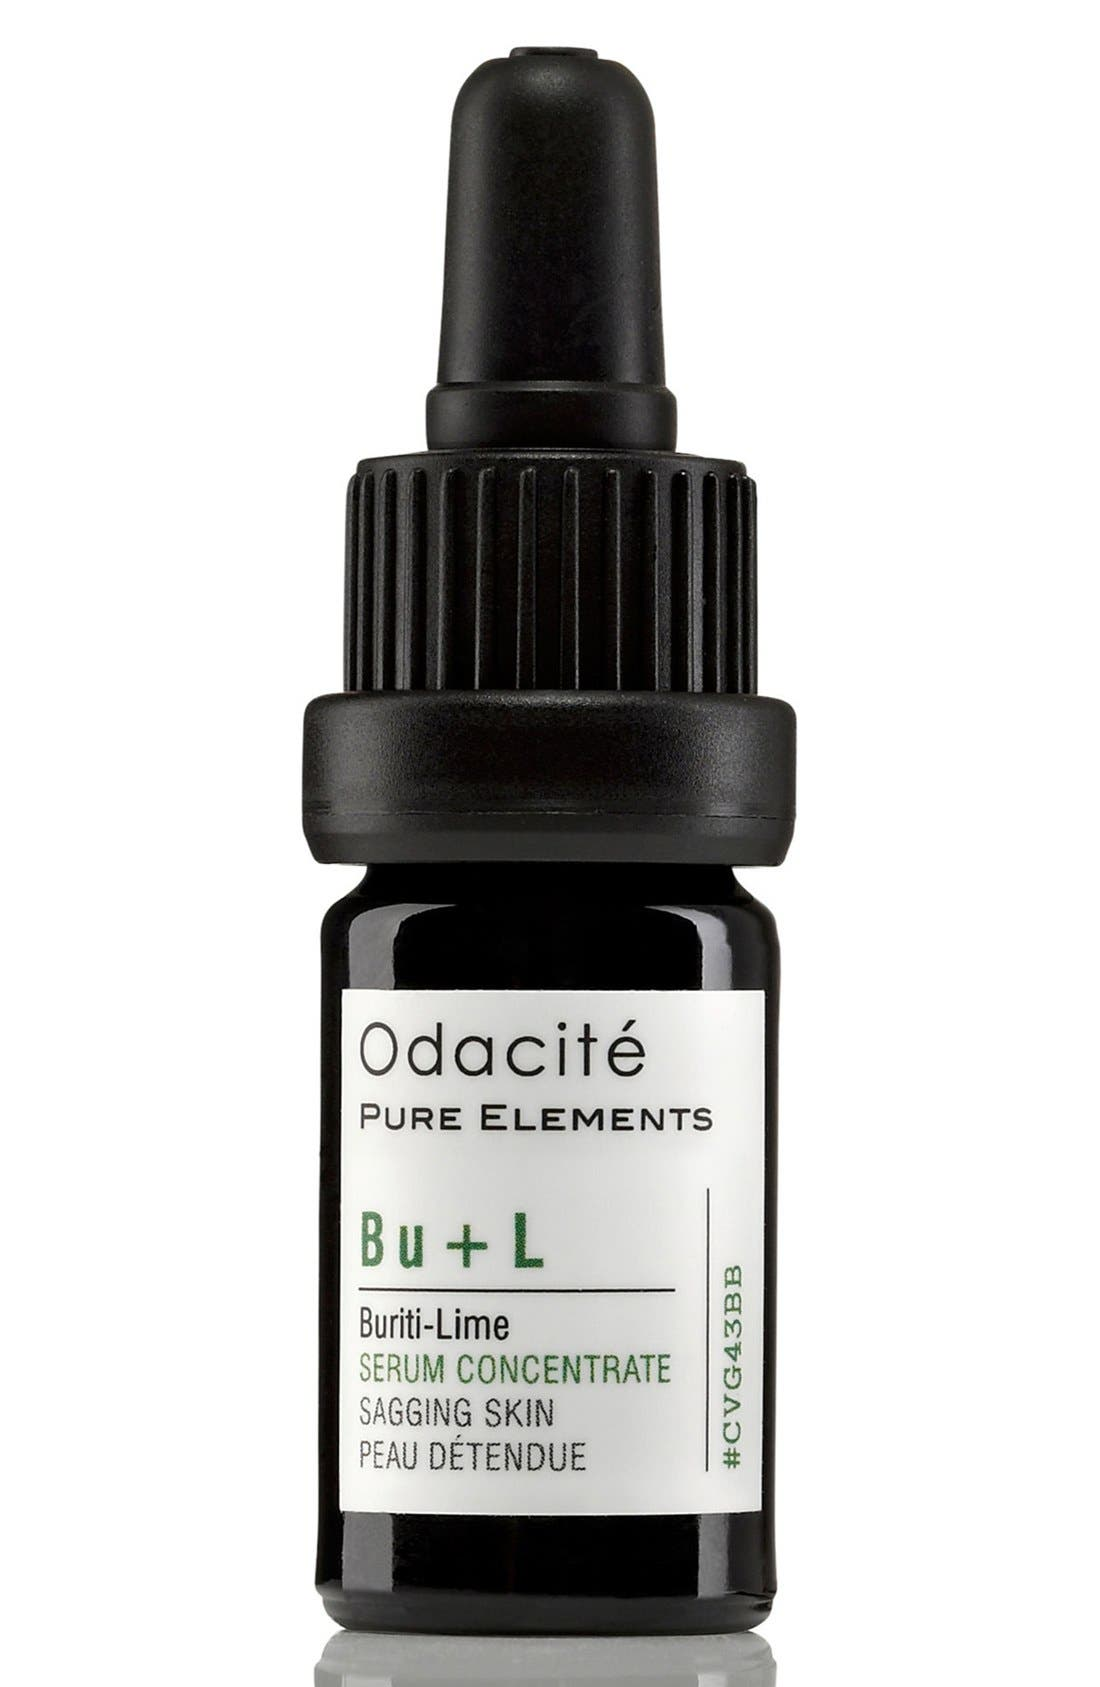 Odacité Bu + L Buriti-Lime Sagging Skin Facial Serum Concentrate